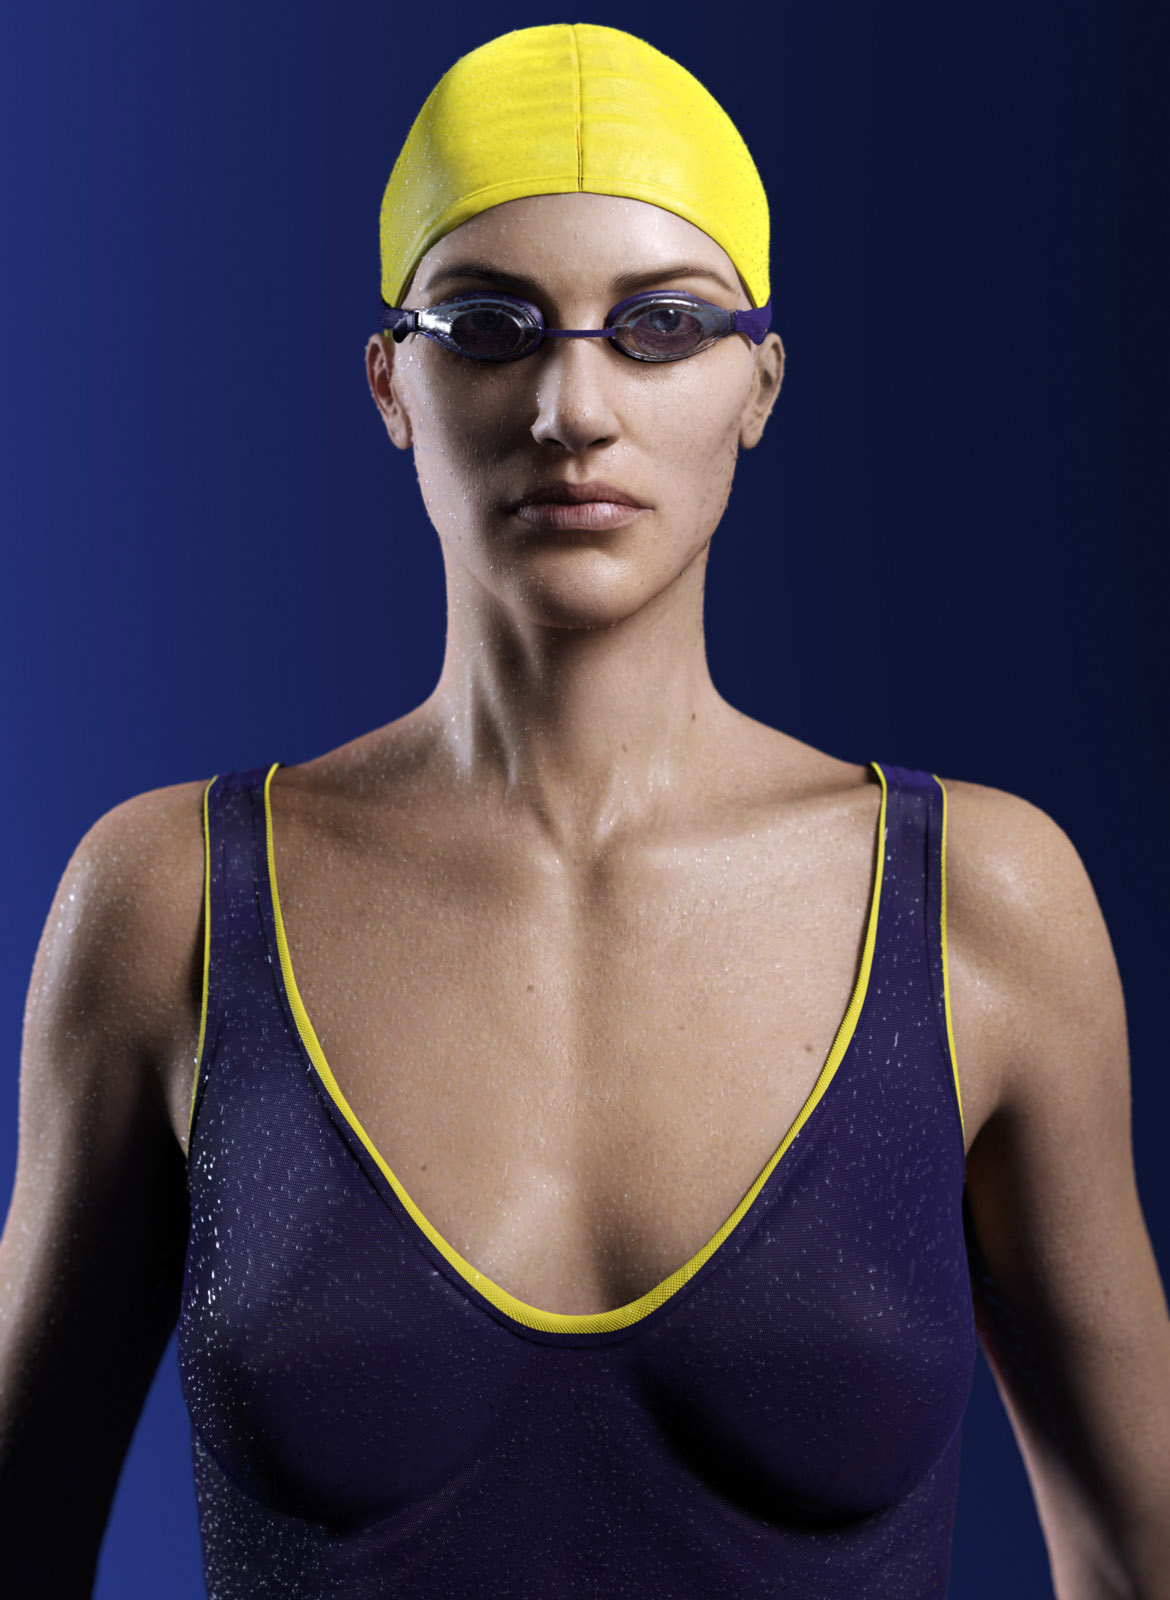 swimmer_portrait.jpg